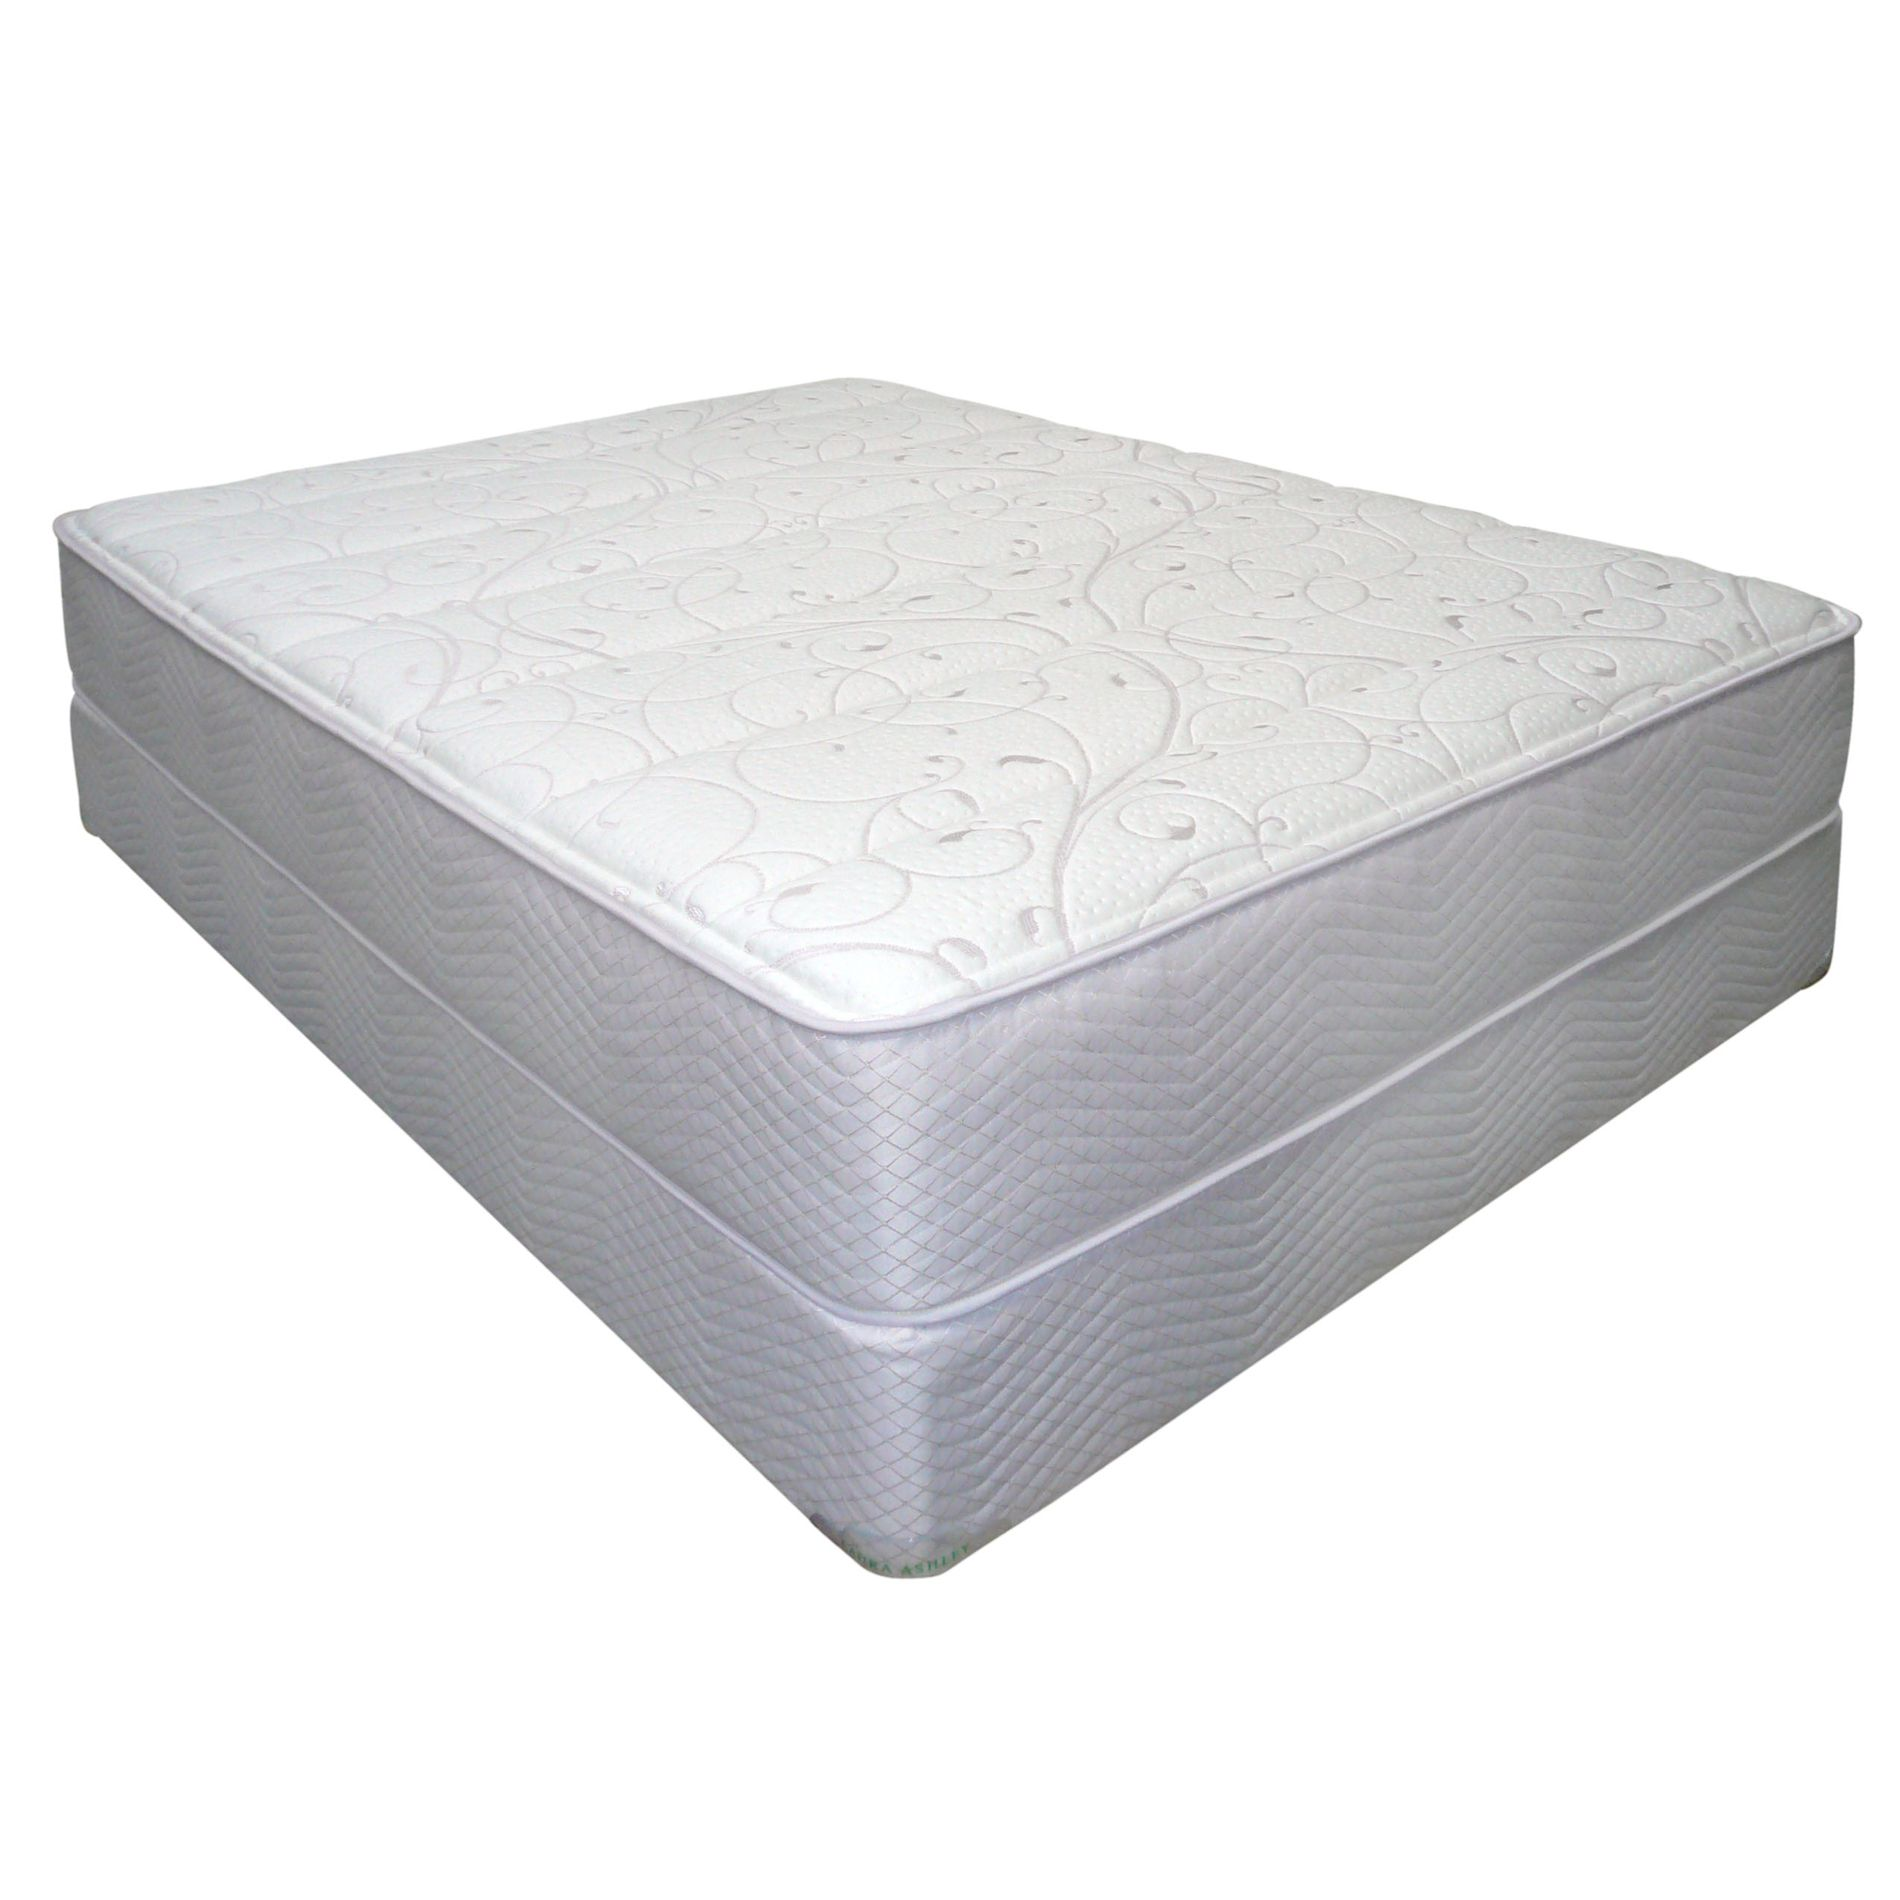 Laura Ashley 811742017559 Opal Latex Queen Mattress Only Sears Outlet